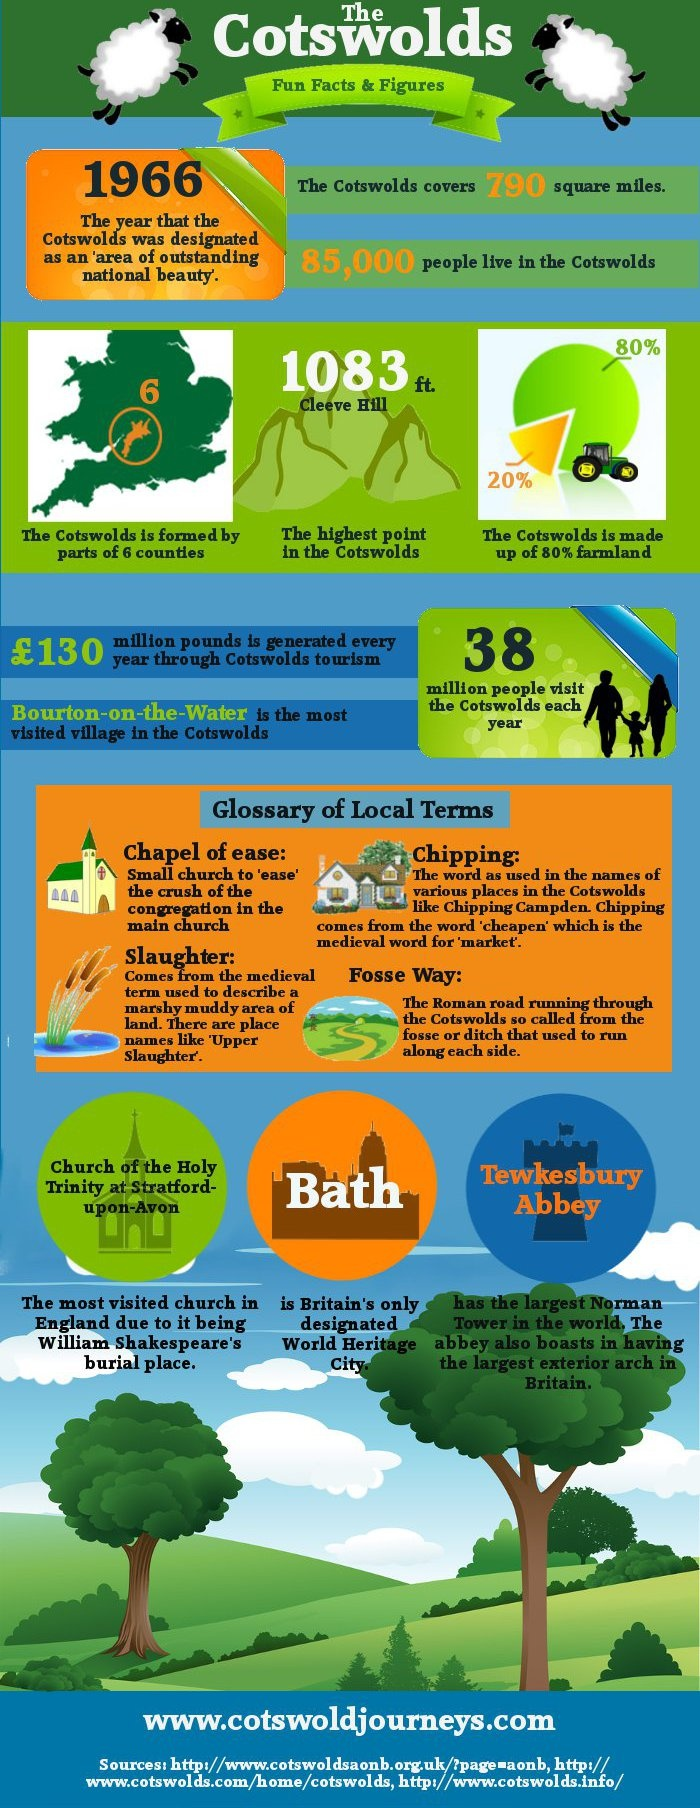 Fun Facts About The Cotswolds